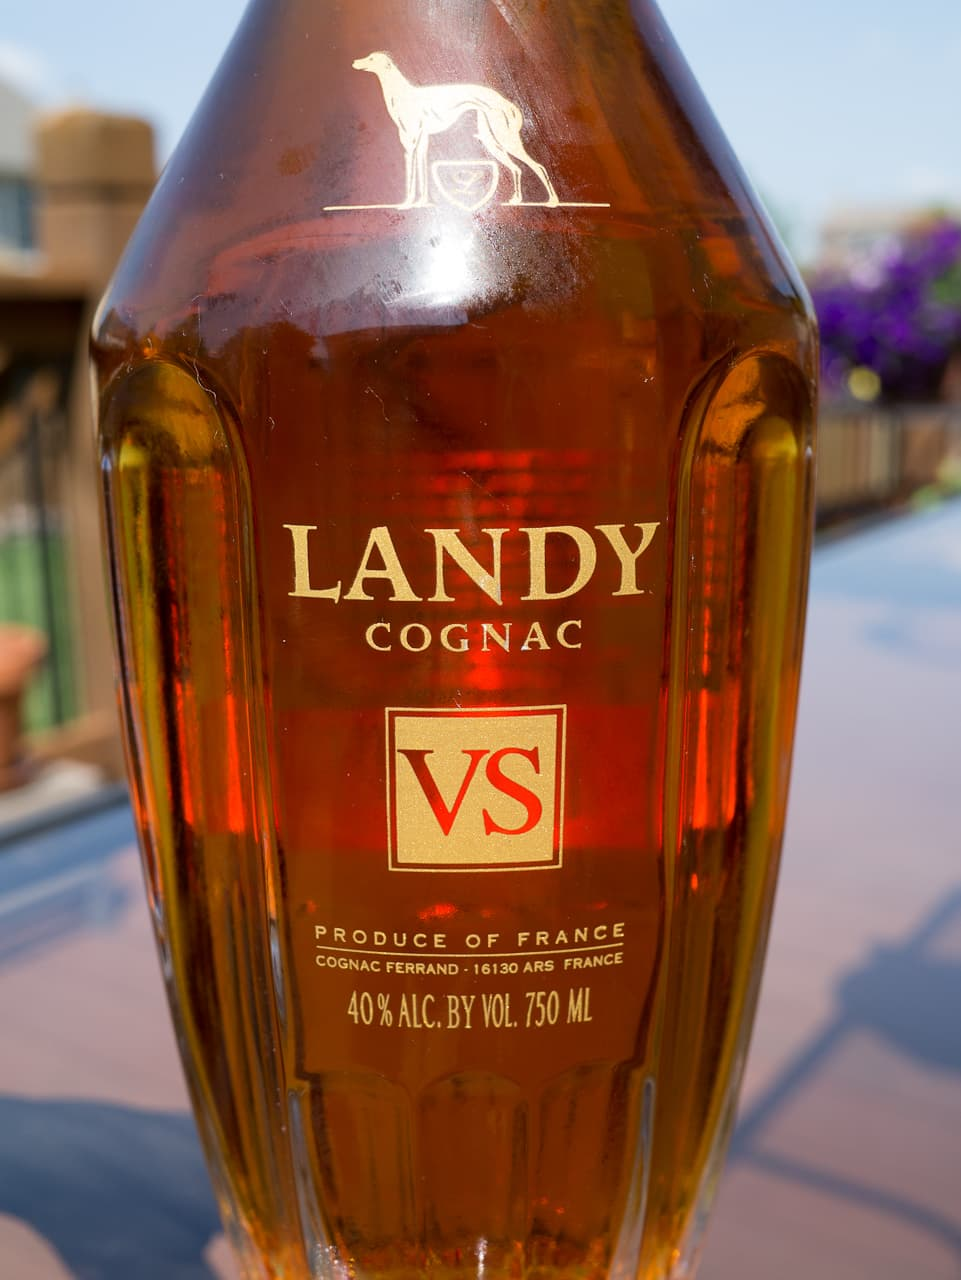 Landy Cognac VS